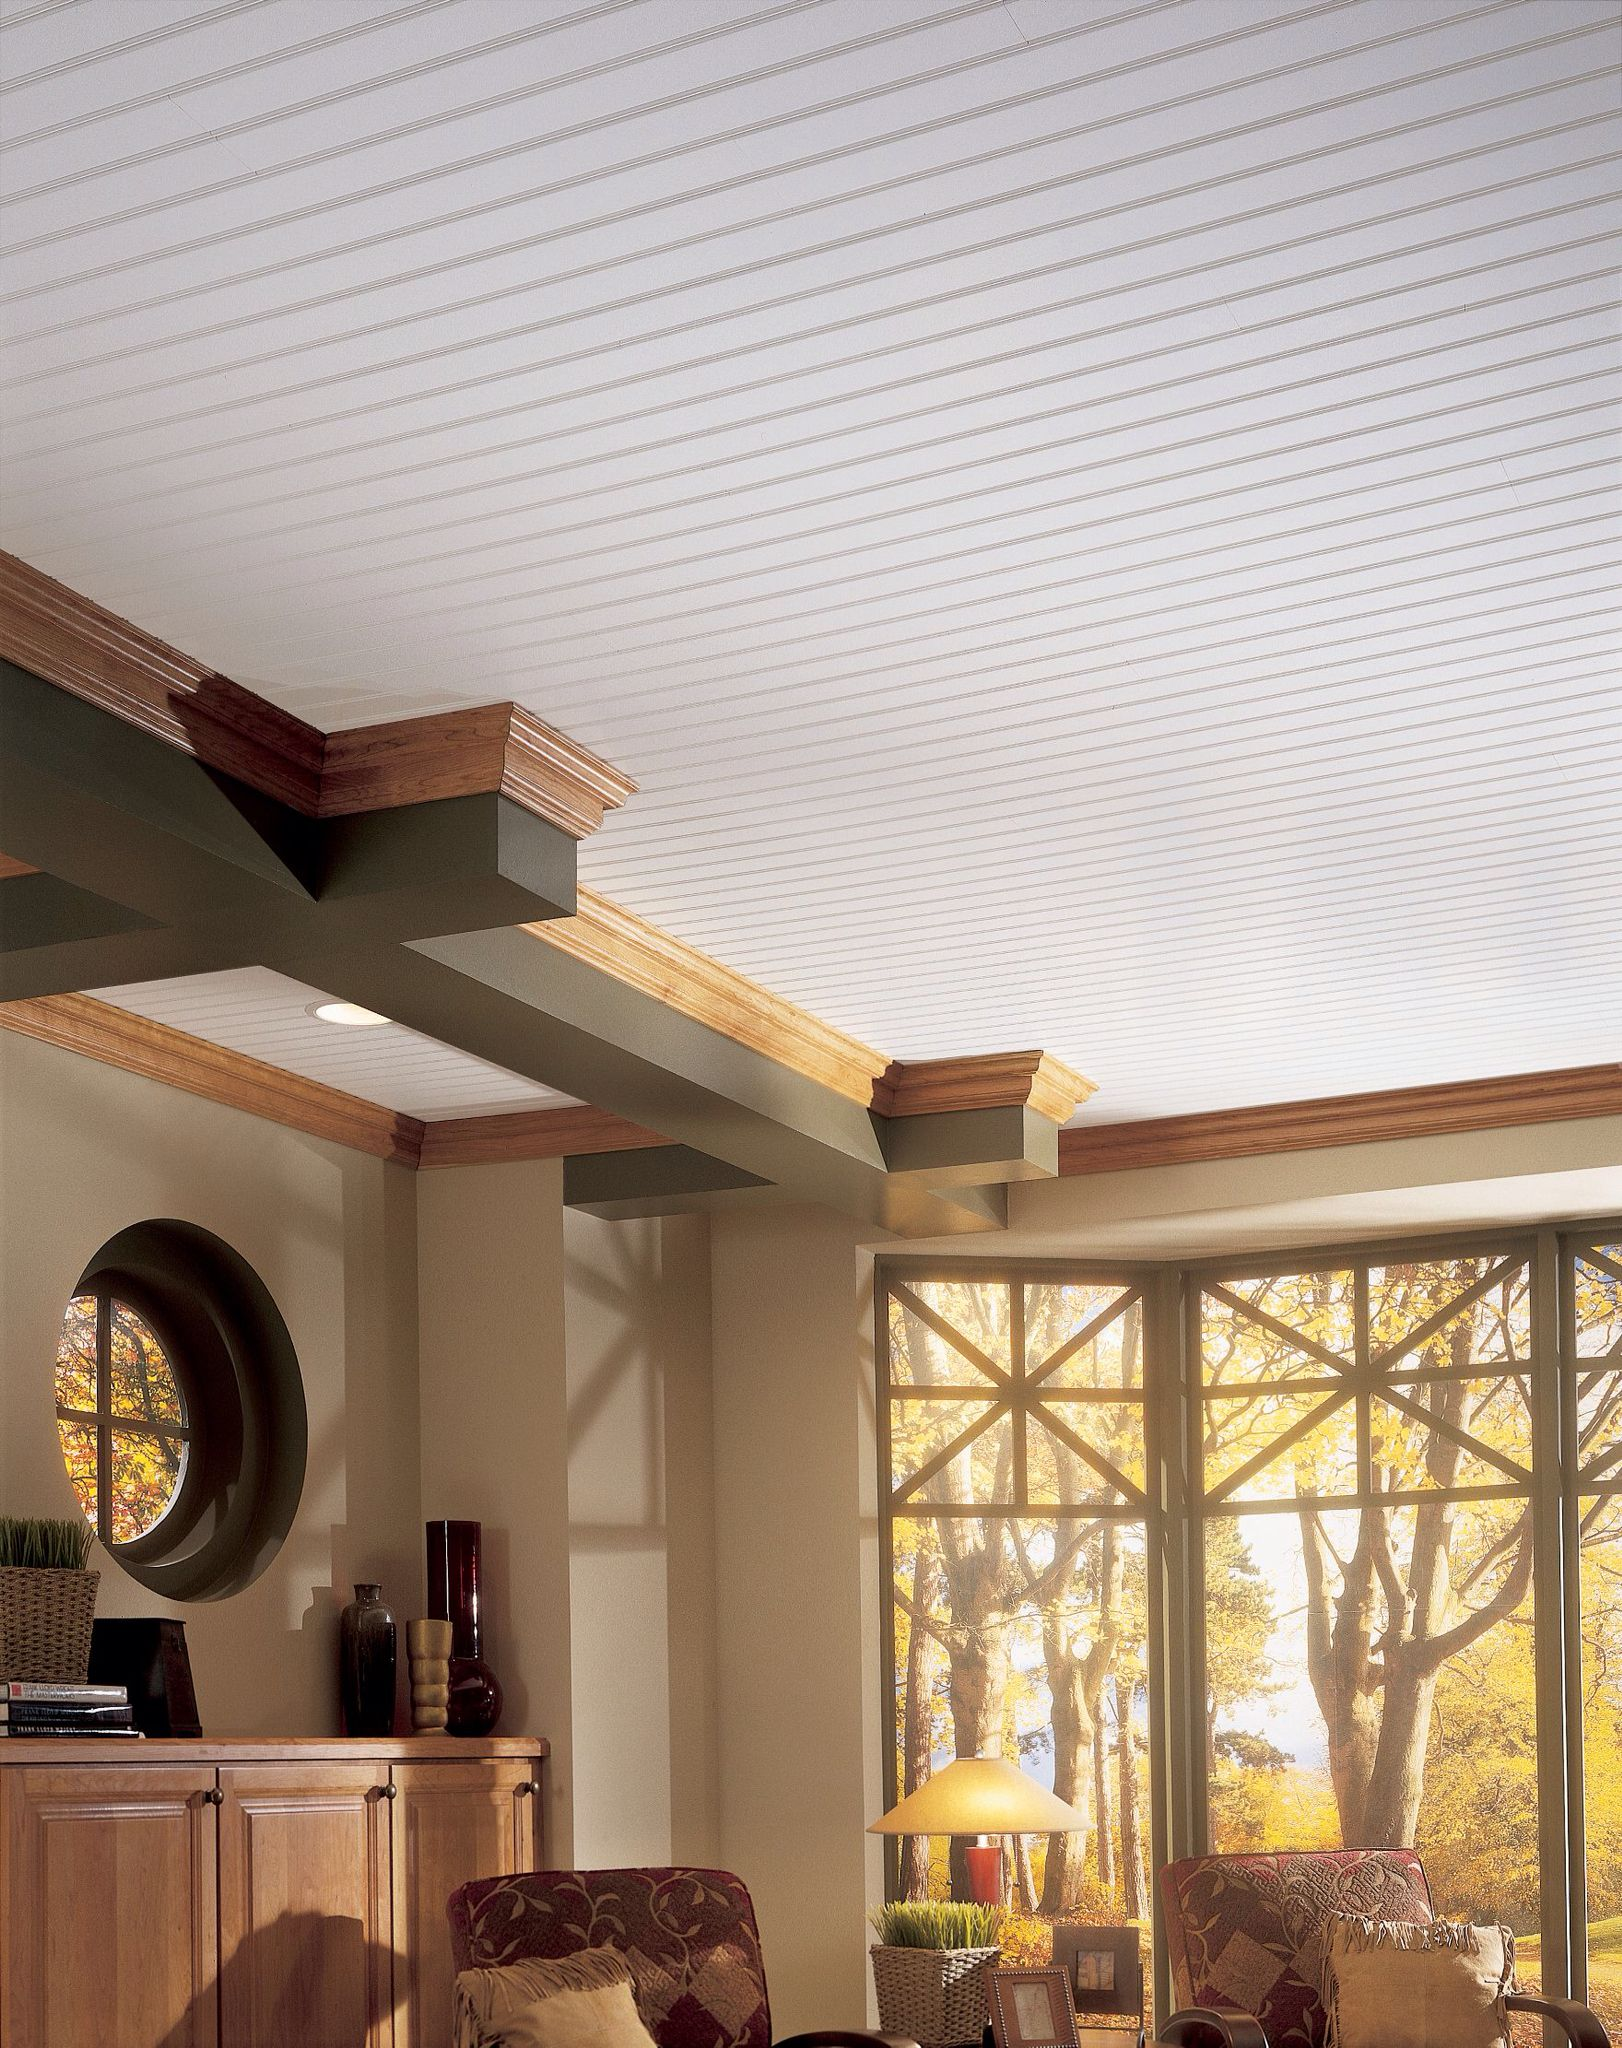 White Wood Ceiling Armstrong Ceiling Plank Ceiling Ceiling Tiles